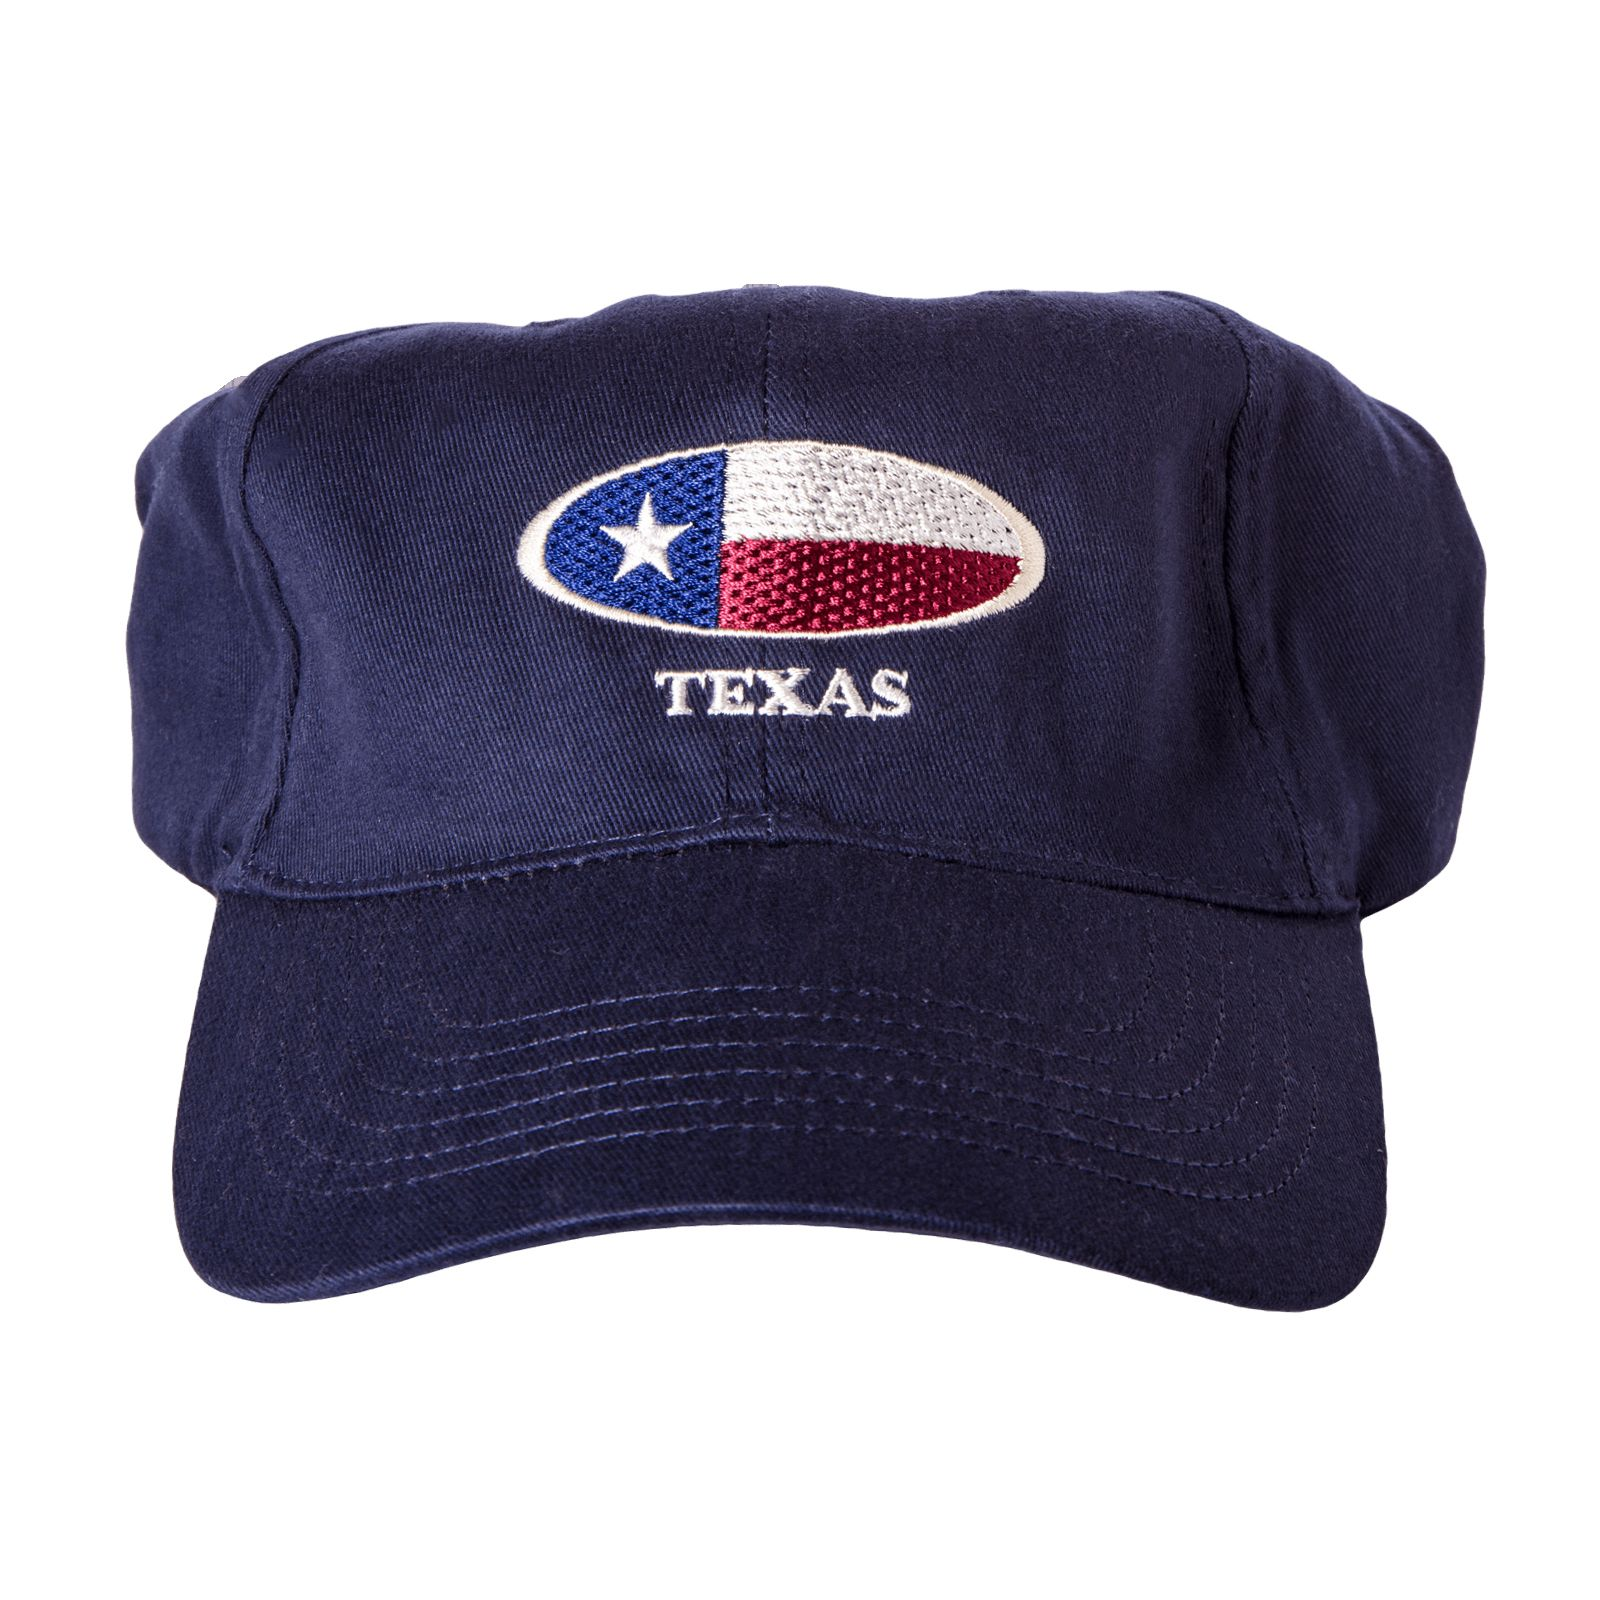 Oval Texas Flag Baseball Cap